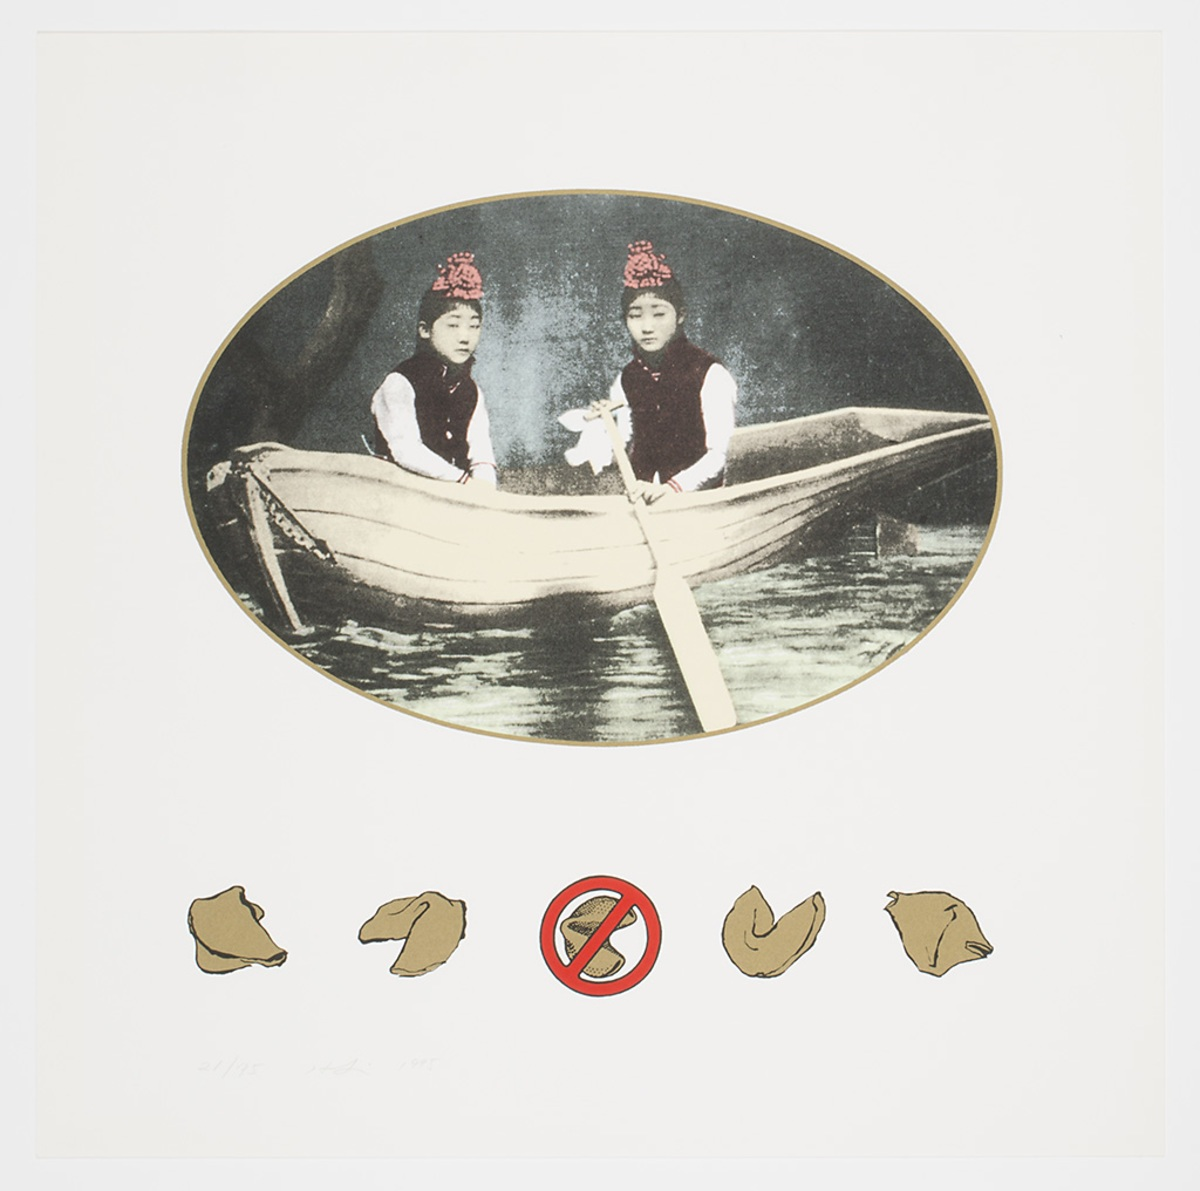 a historical photo of two people in a boat in in an oval over five fortune cookies in a row, the middle fortune cookie has a no symbol